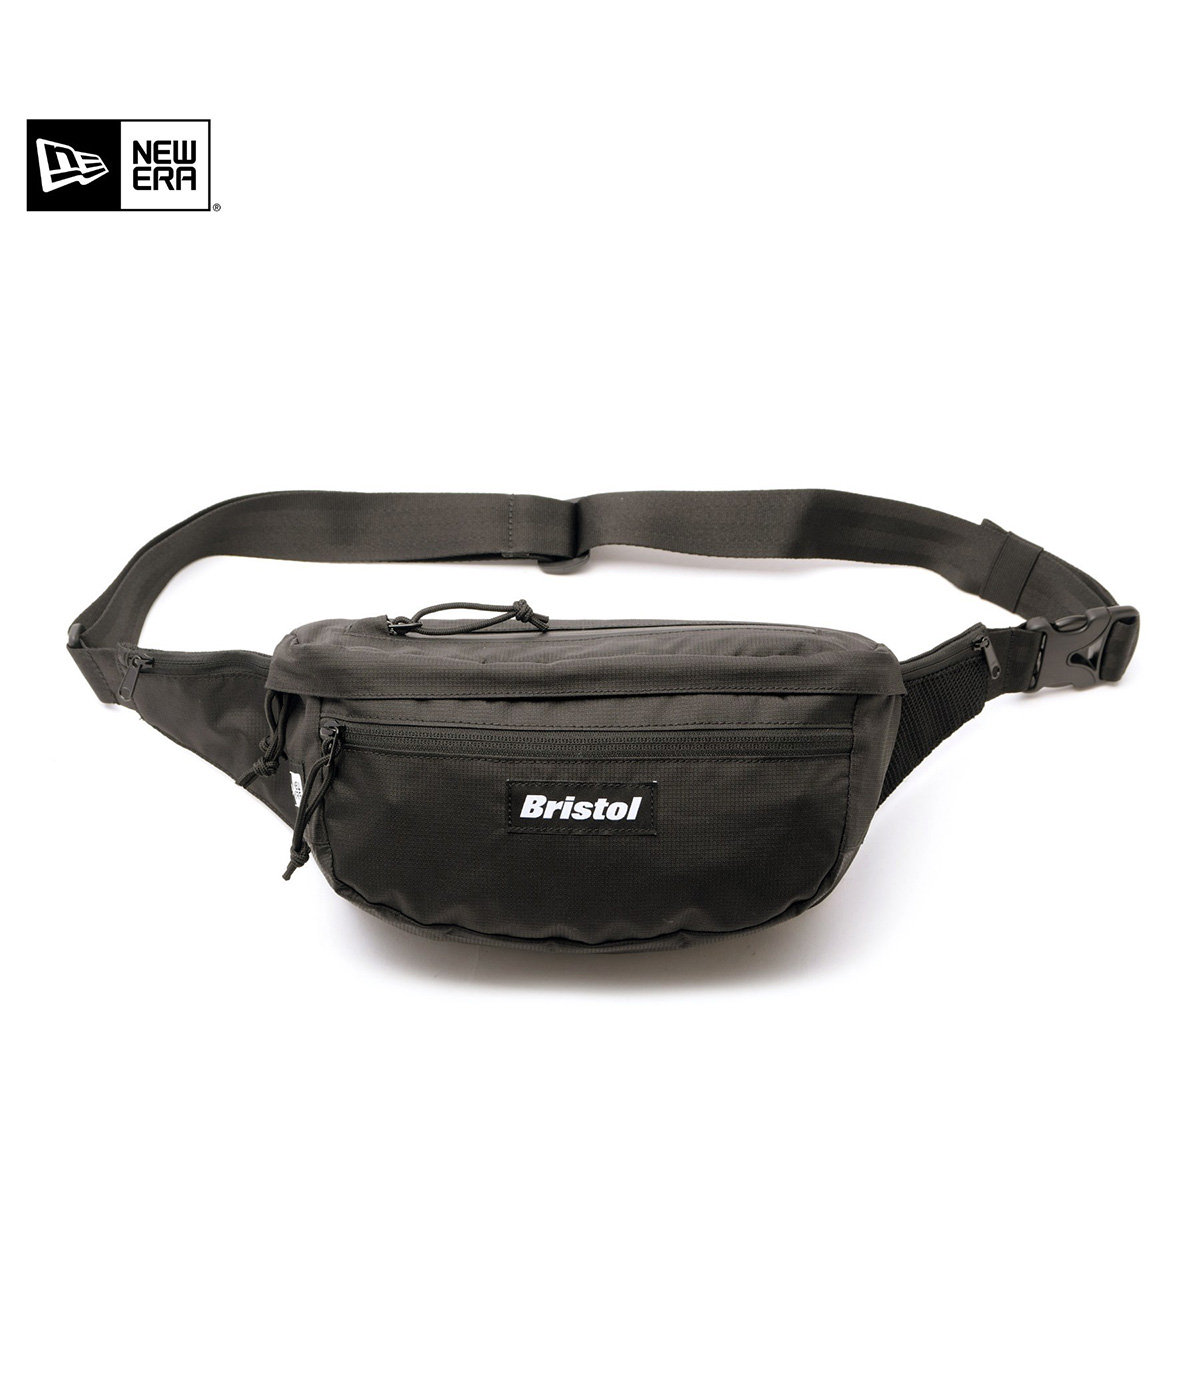 NEW ERA EXPLORER WAIST BAG*